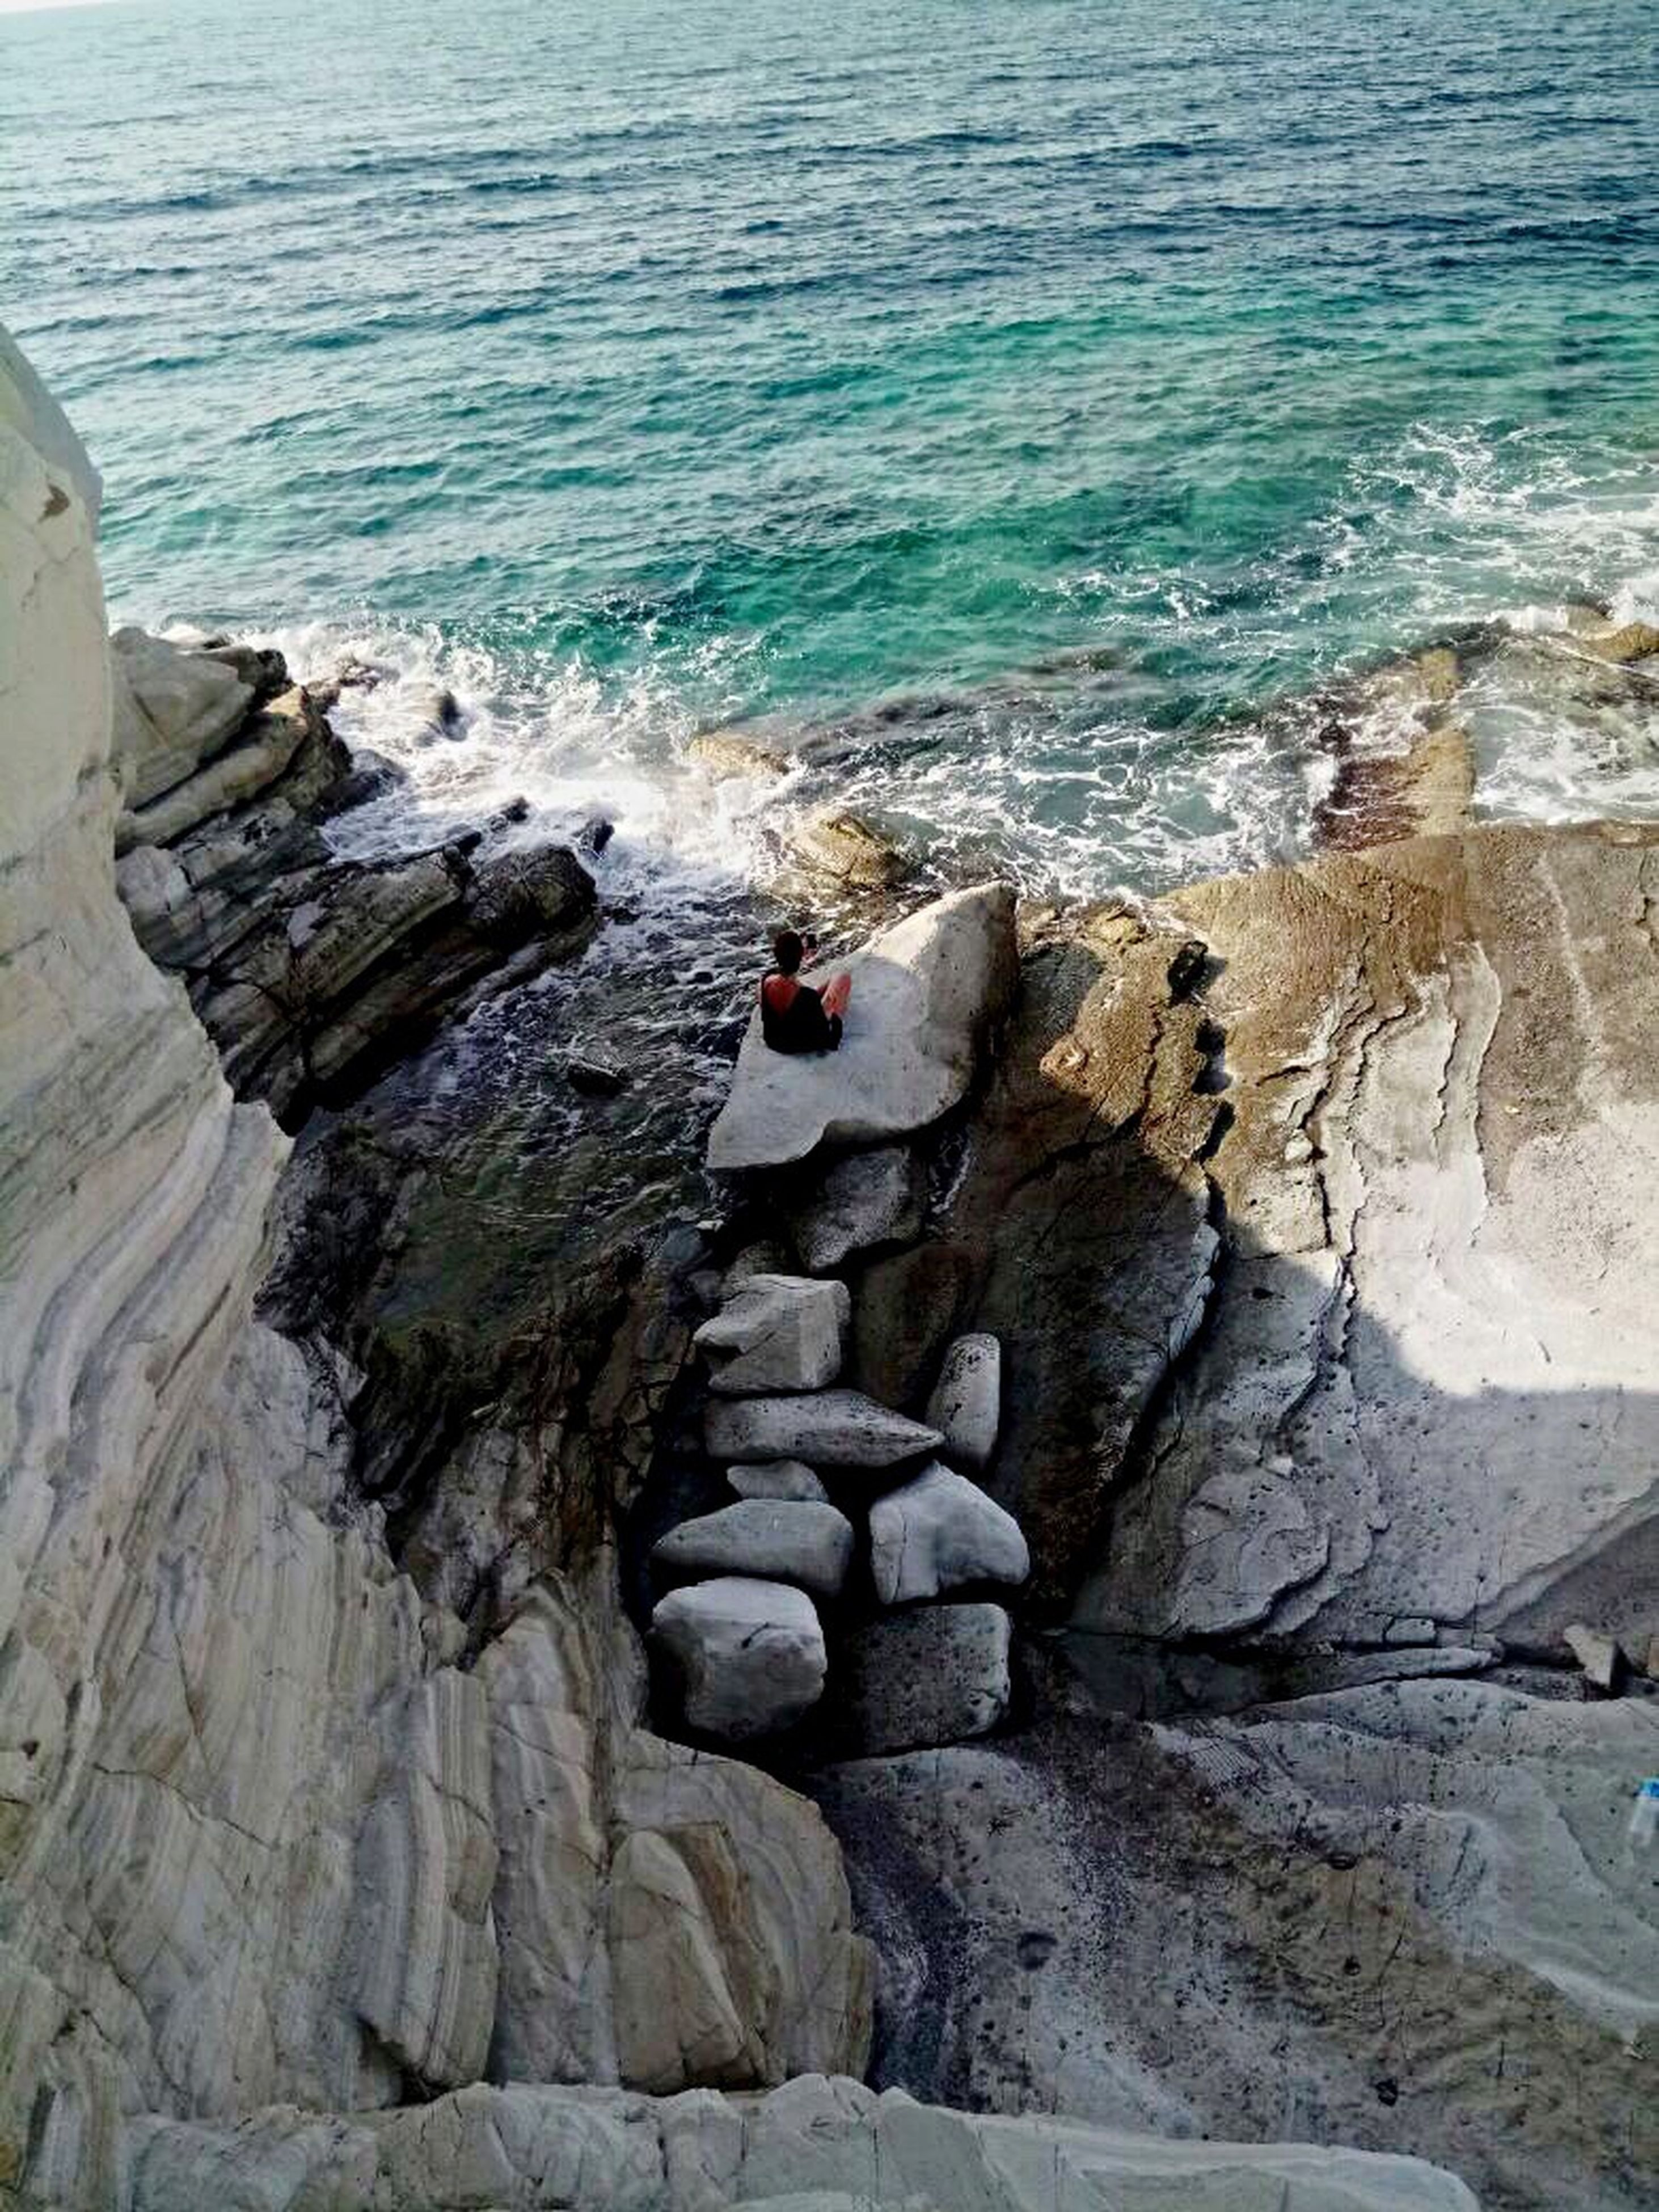 sea, rock - object, water, nature, beauty in nature, day, cliff, scenics, outdoors, wave, horizon over water, one person, people